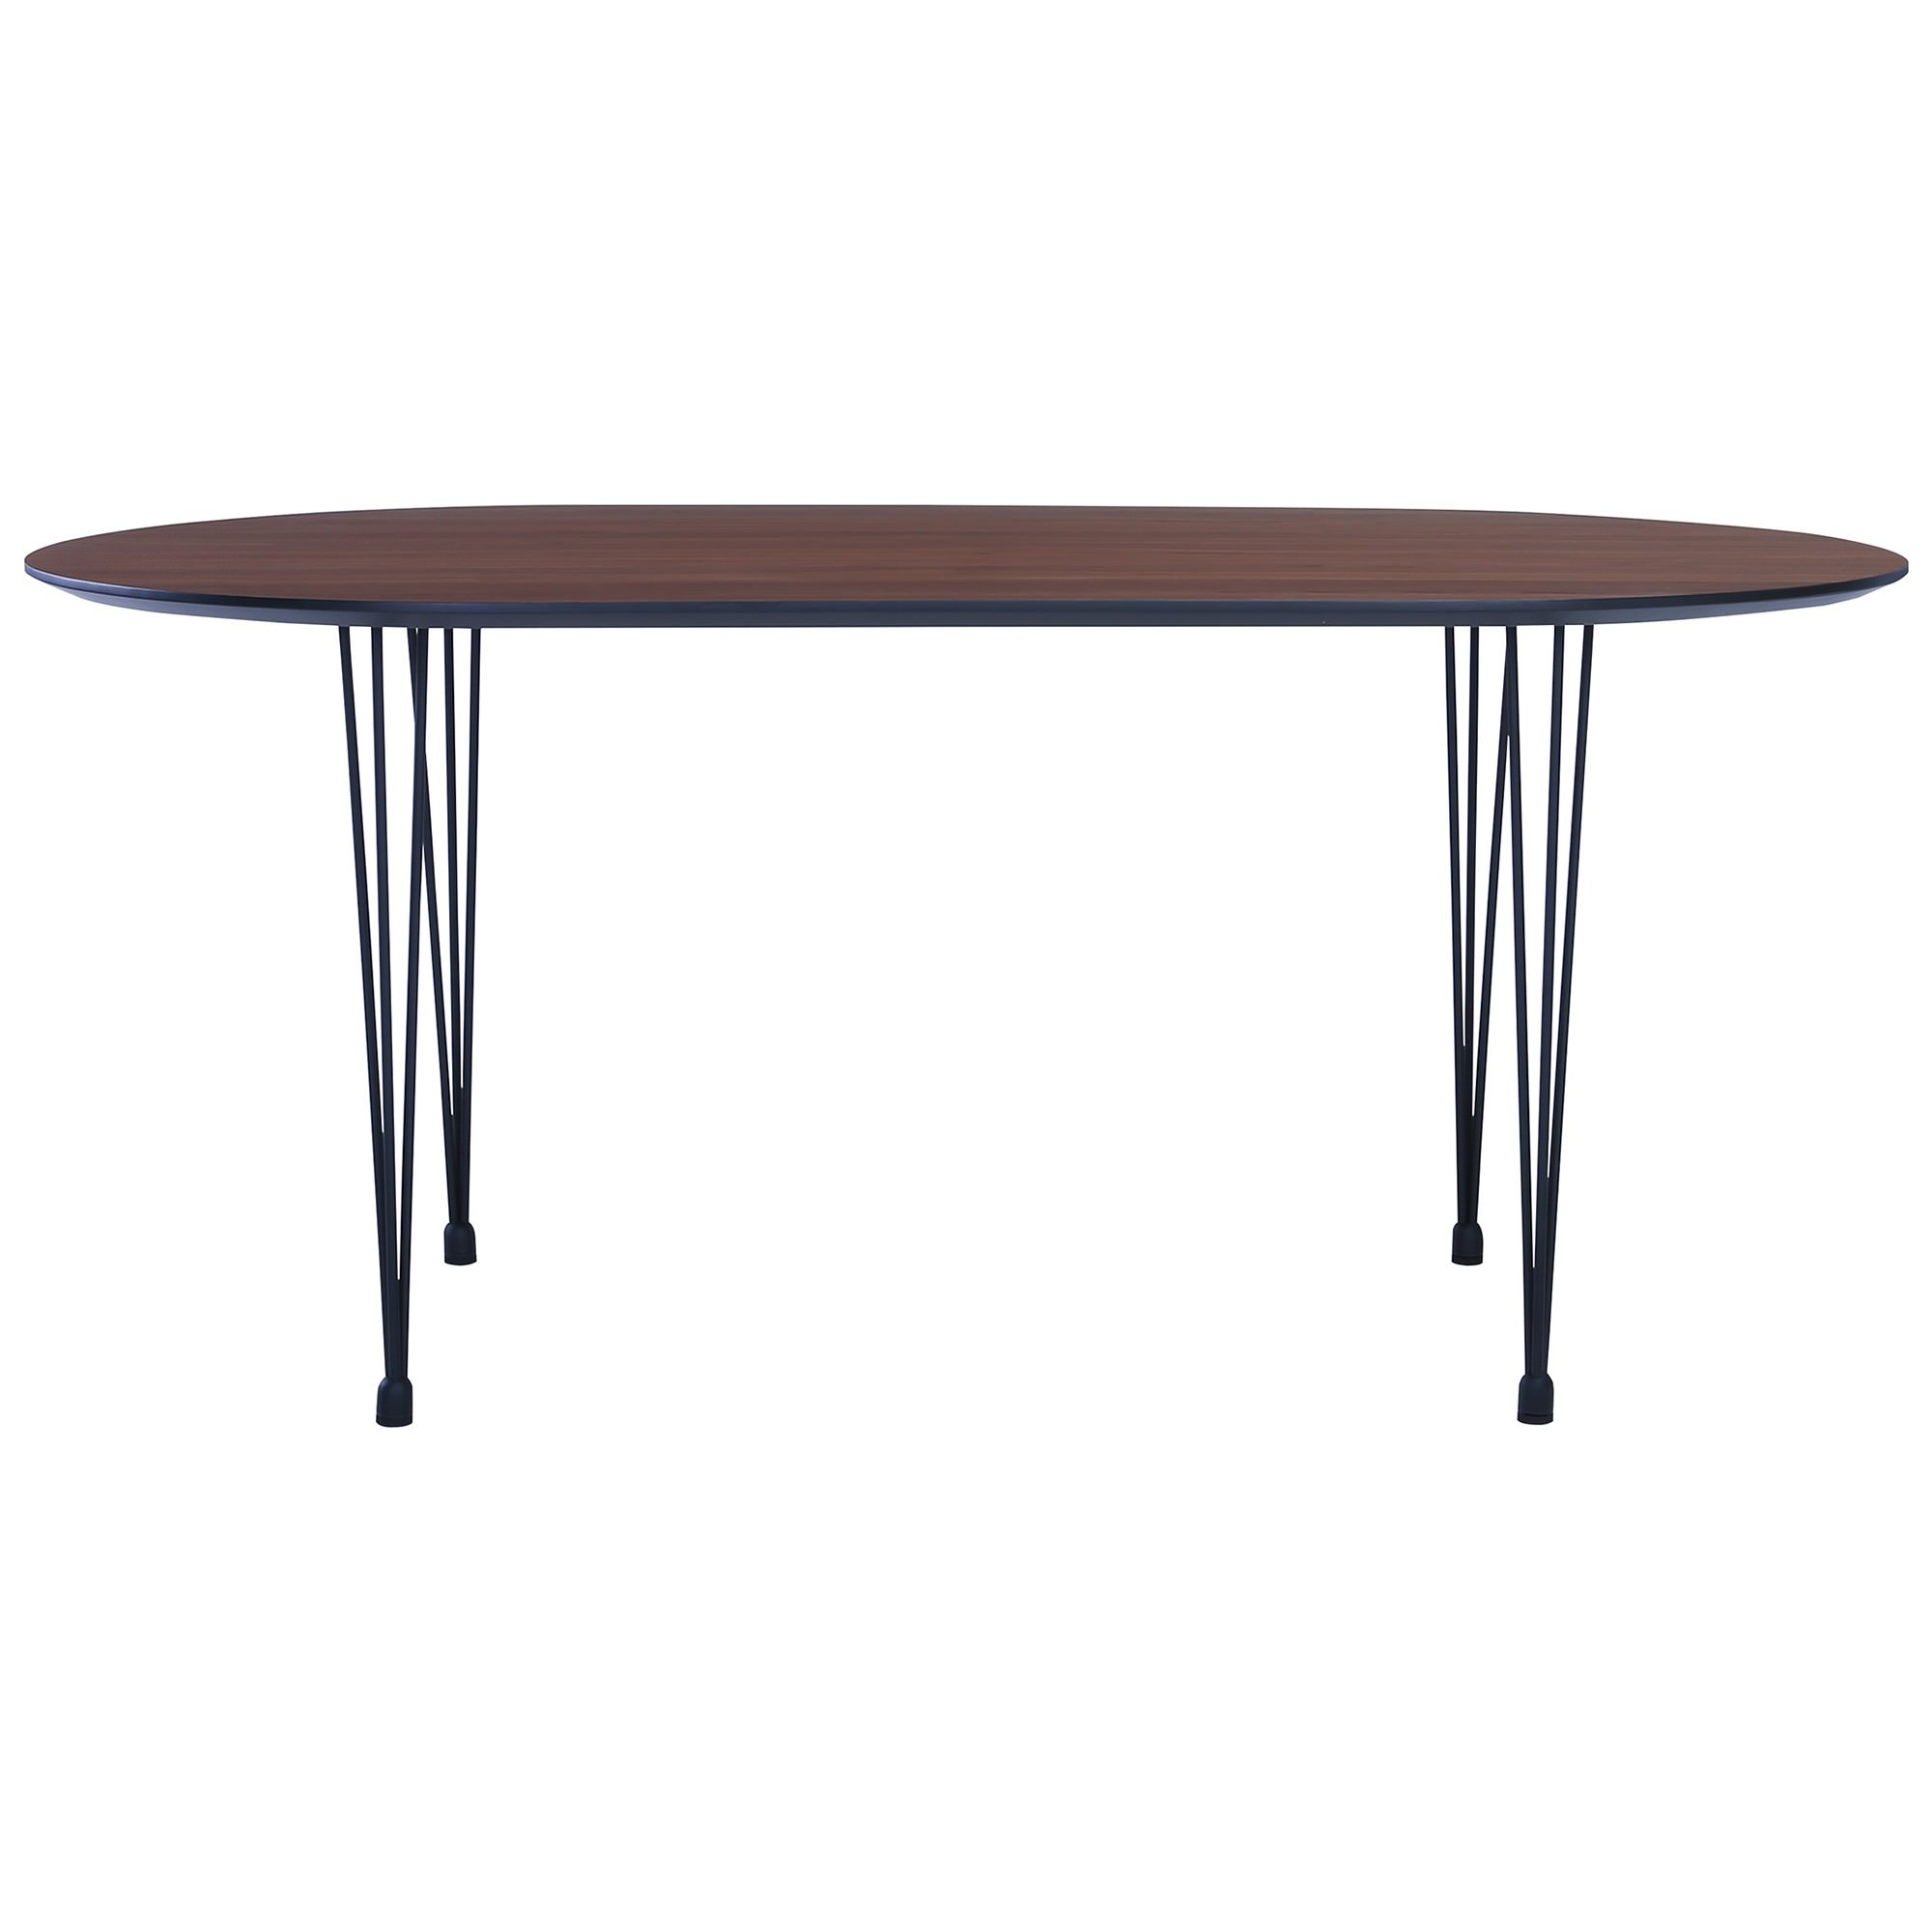 Omeo Dining Table, 170cm, Walnut / Black